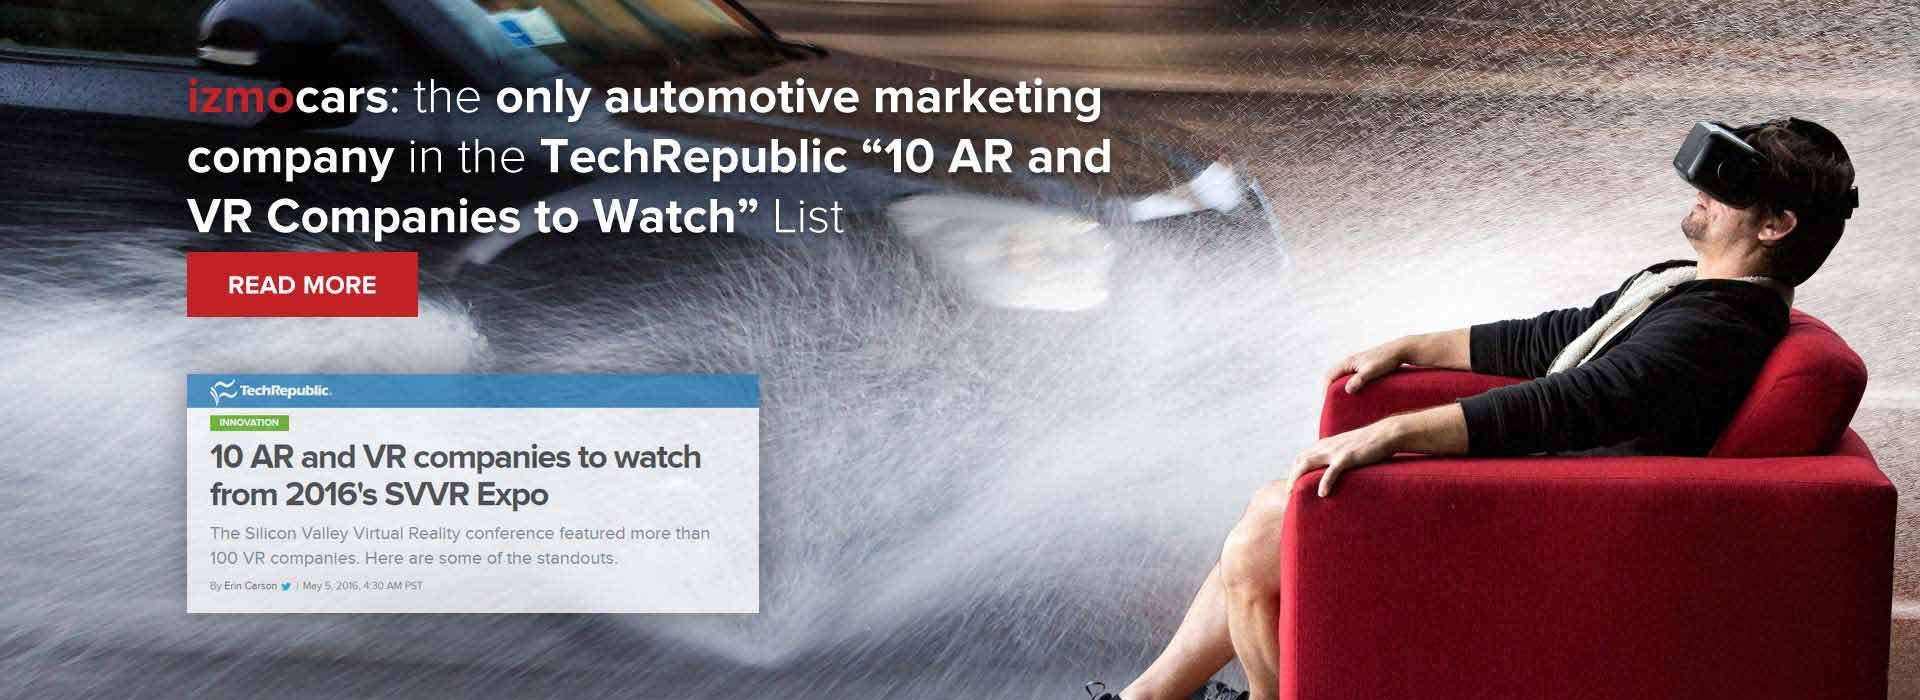 10 AR and VR companies to watch